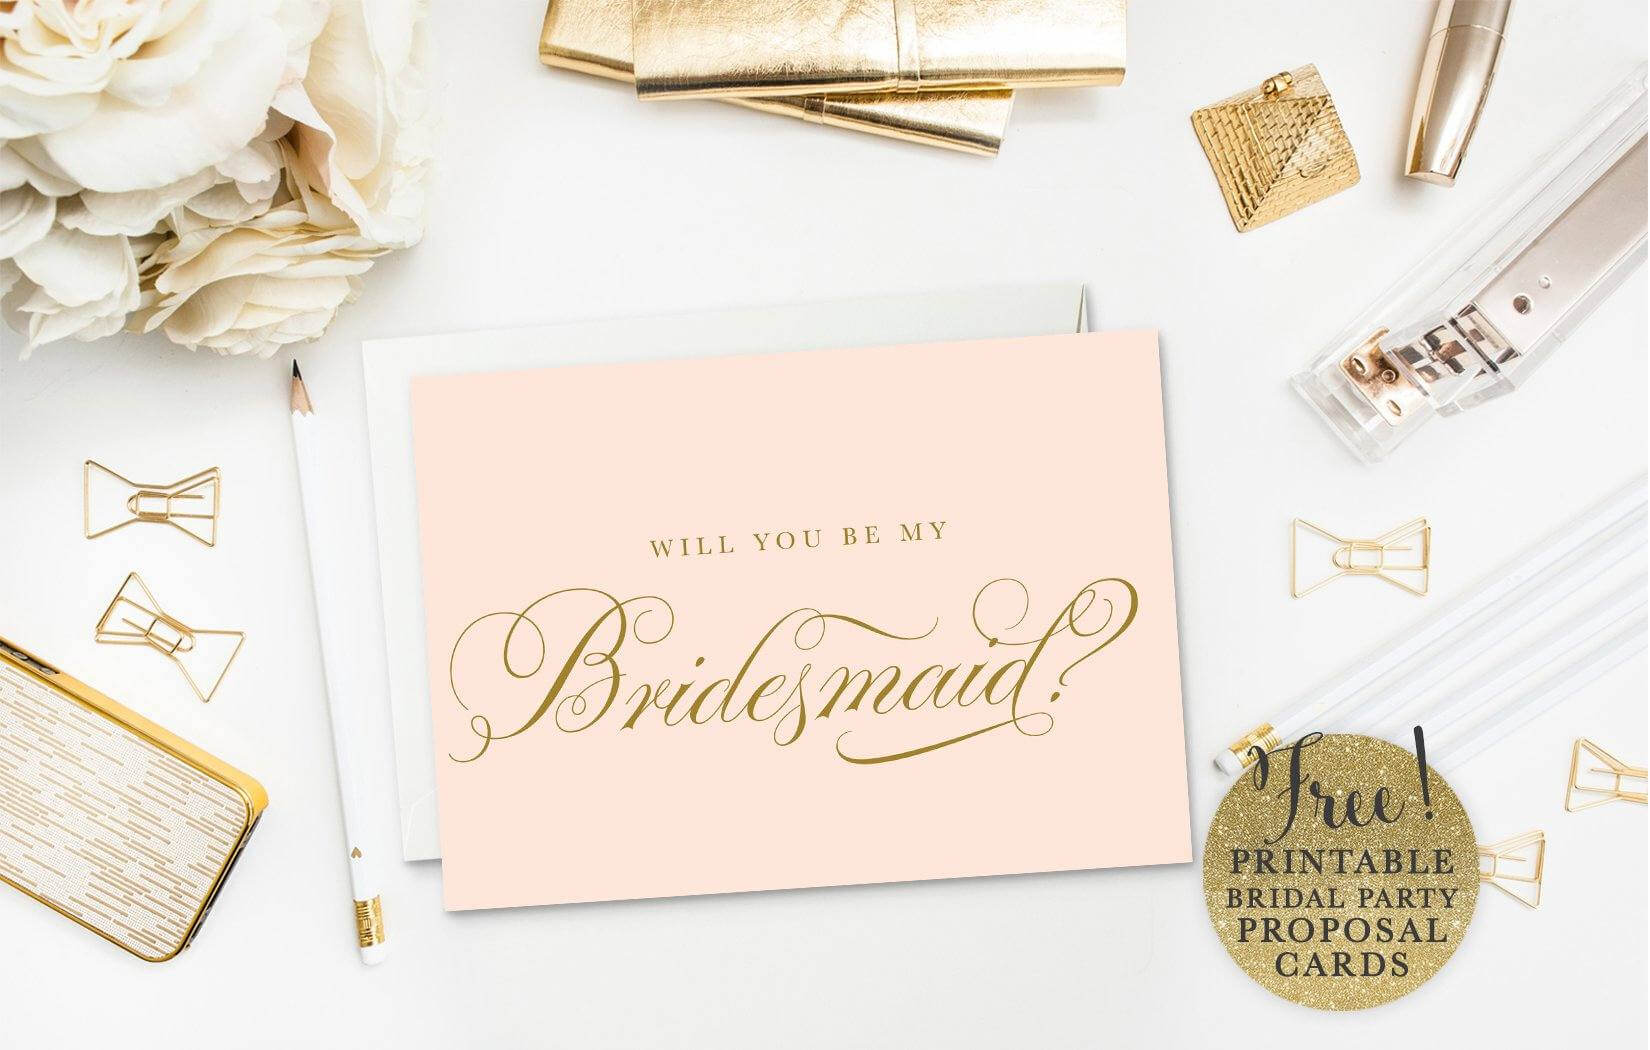 10 Will You Be My Bridesmaid? Cards (Free & Printable) For Will You Be My Bridesmaid Card Template